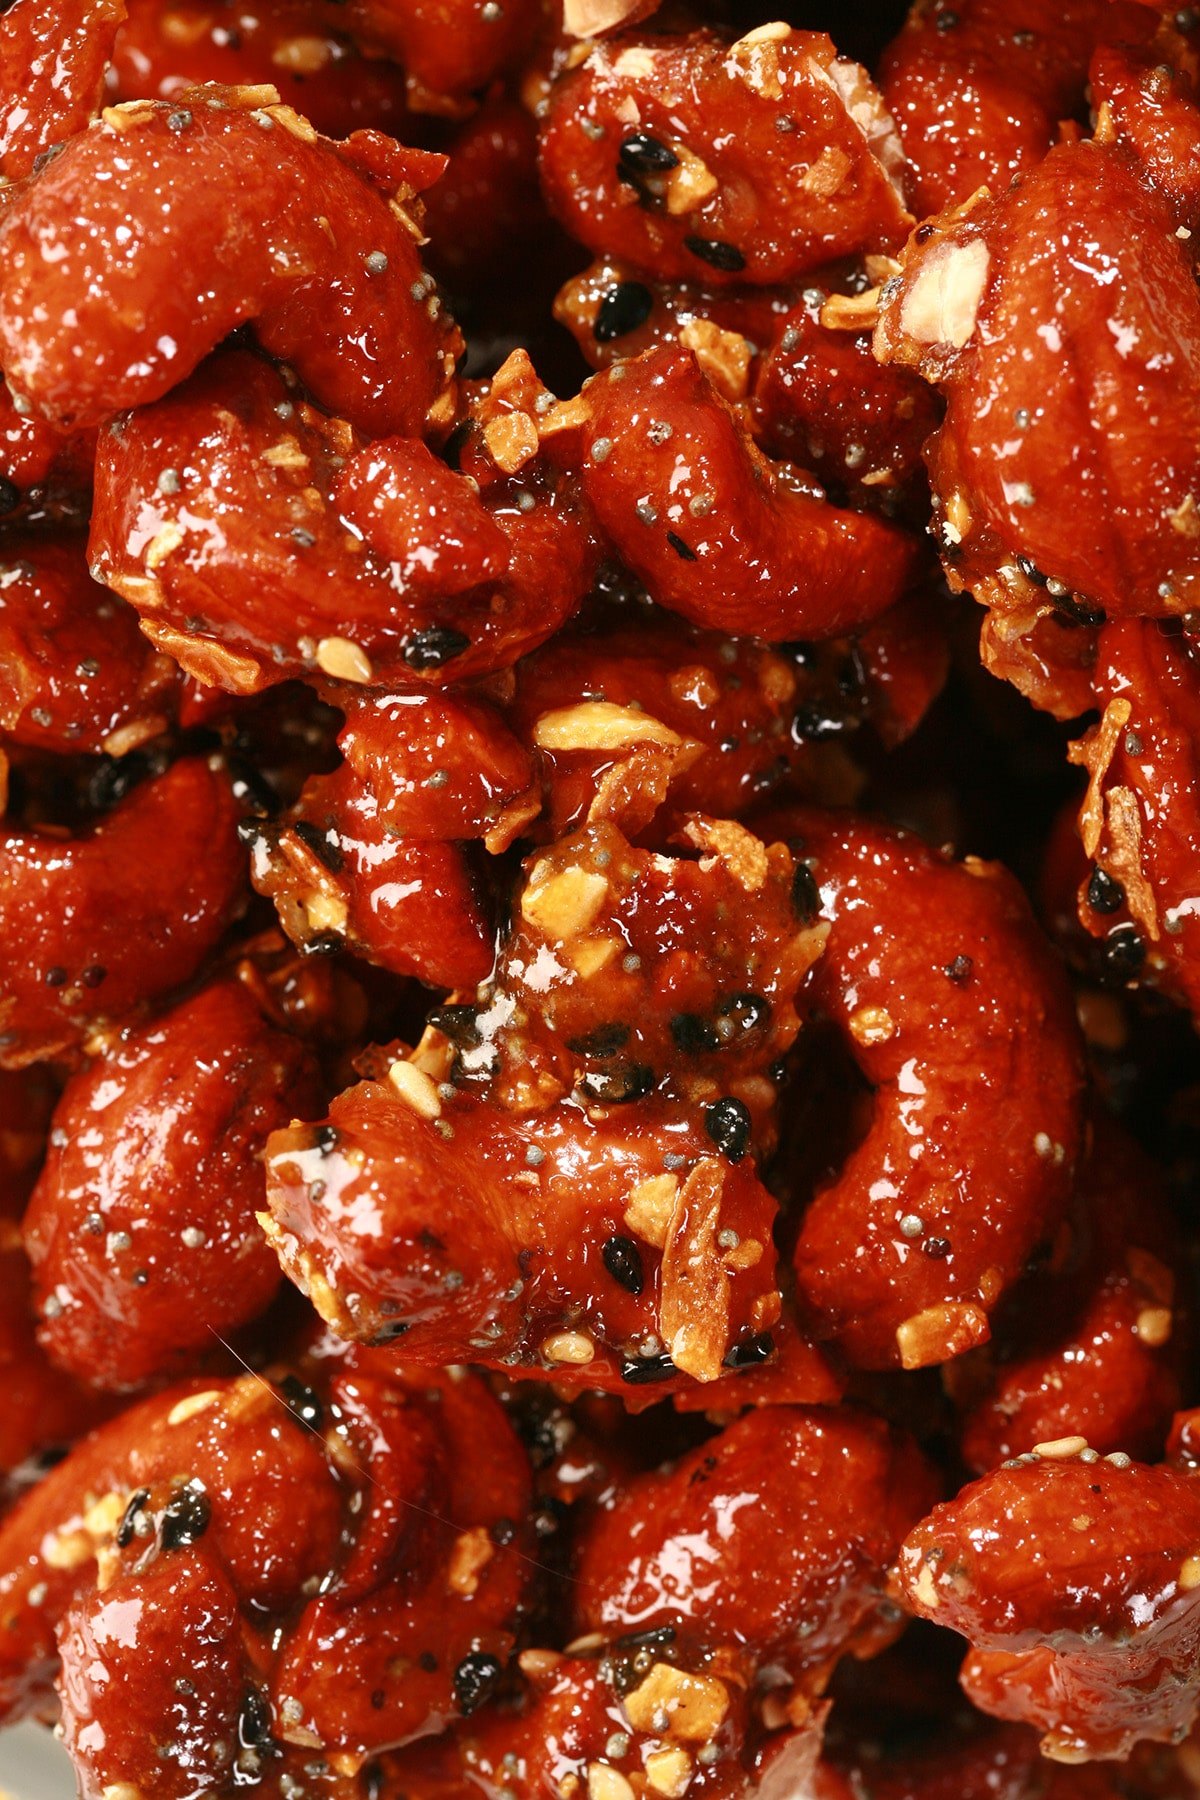 A close up view of Honey Glazed Everything Cashews in a glass bowl. They are crusted with a deep reddish brown caramel, and coated with bagel seasoning.